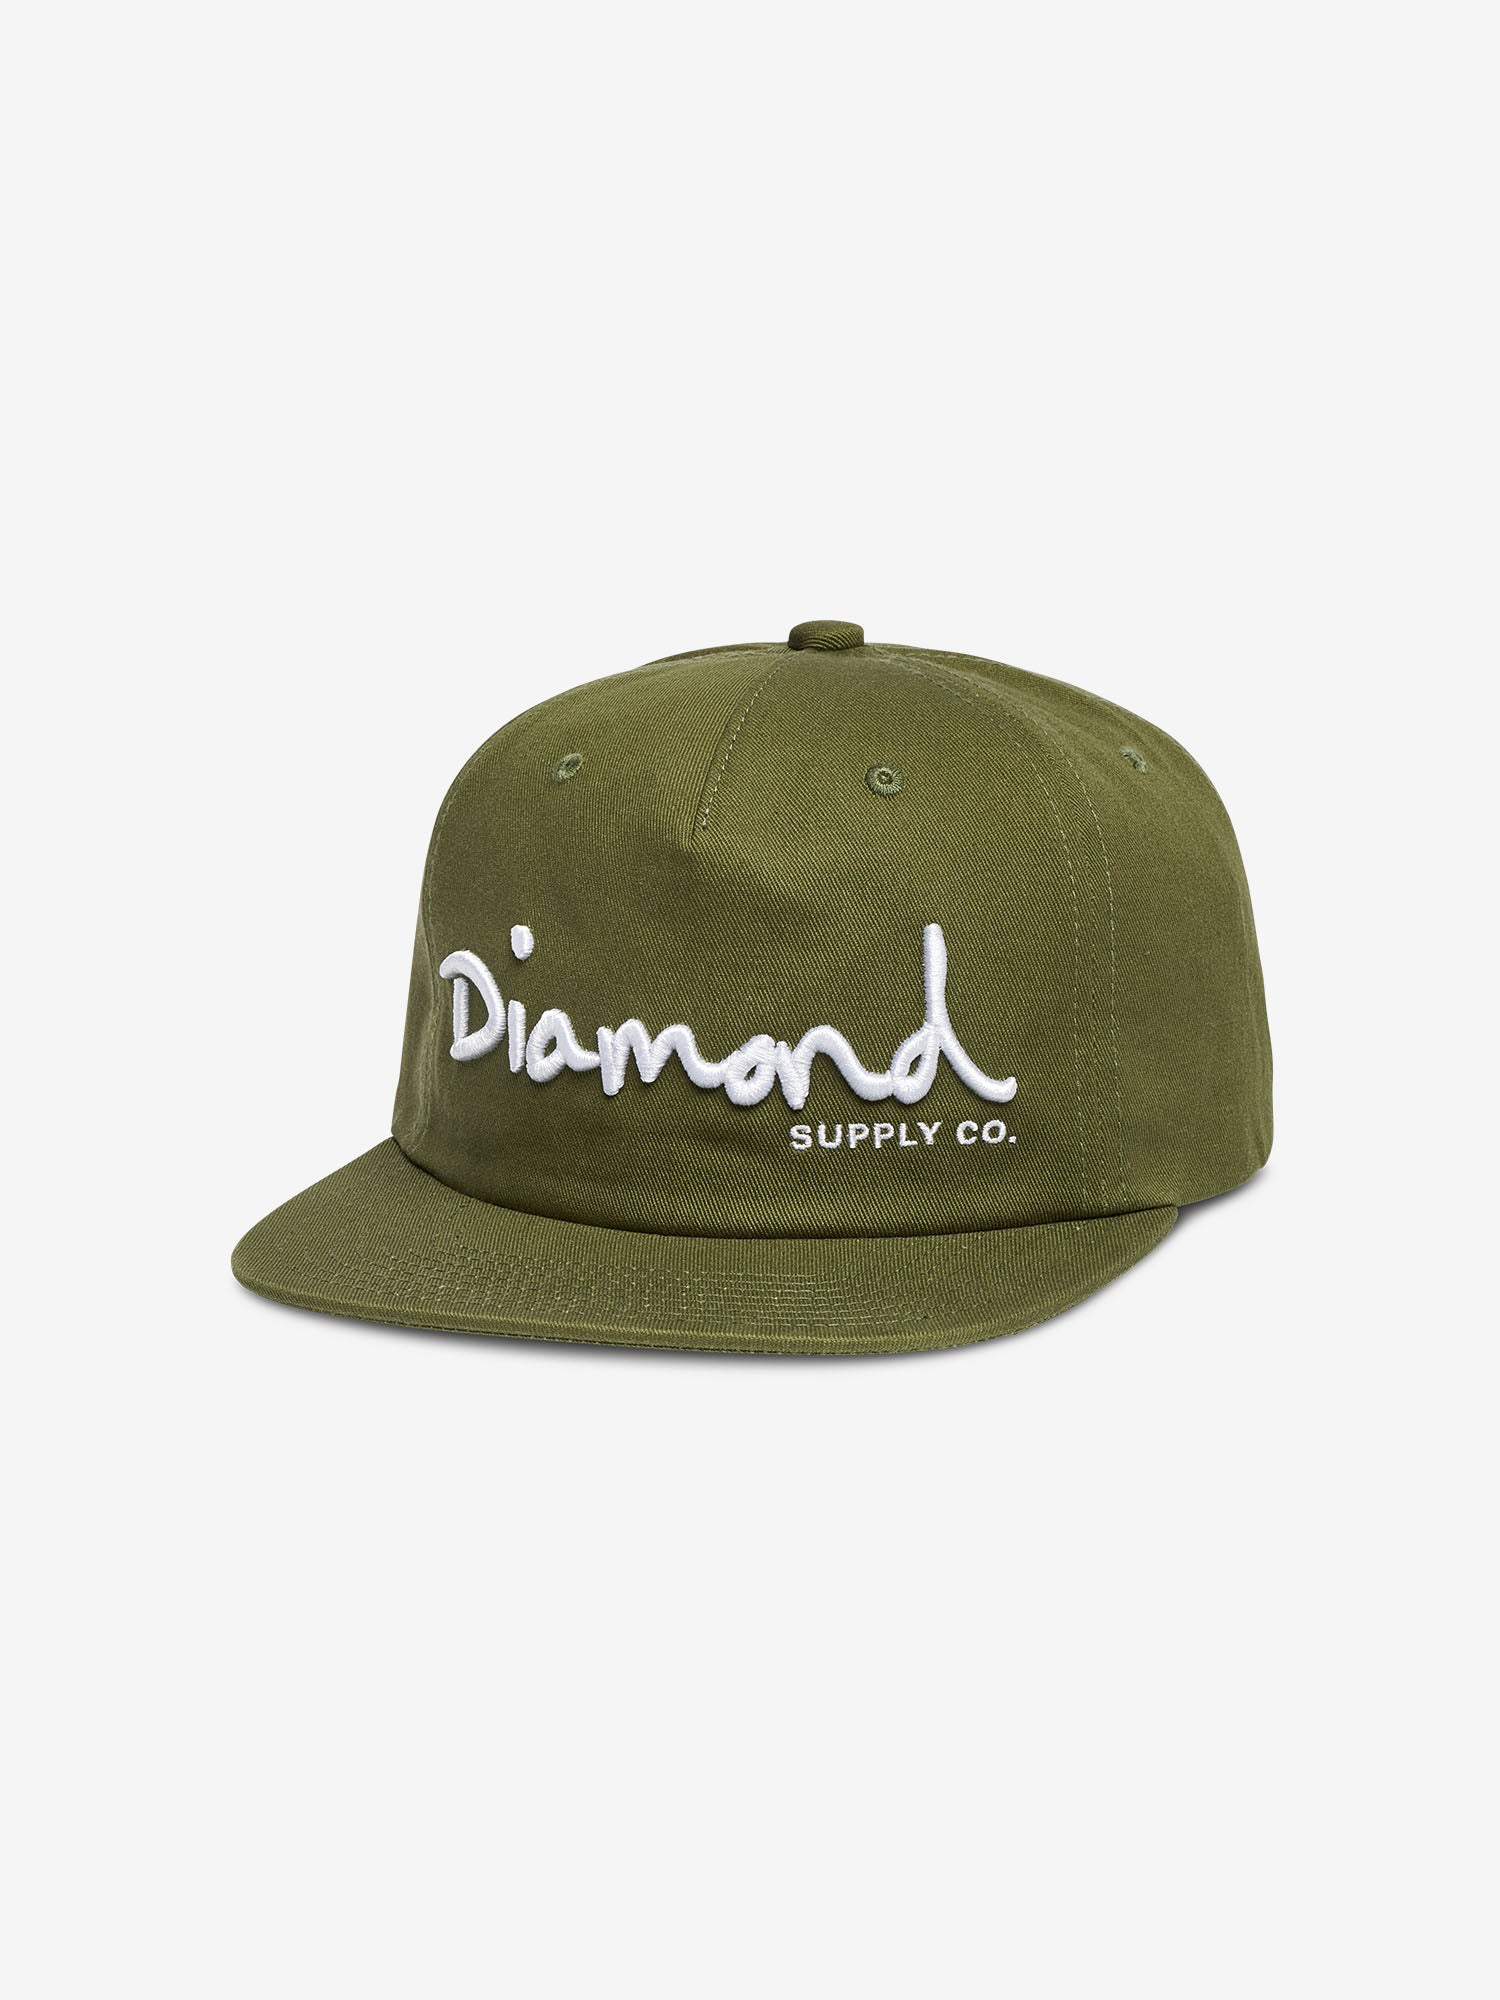 d43c81611d8 Diamond Supply Co. OG SCRIPT UNSTRUCTURED SNAPBACK FALL 2018